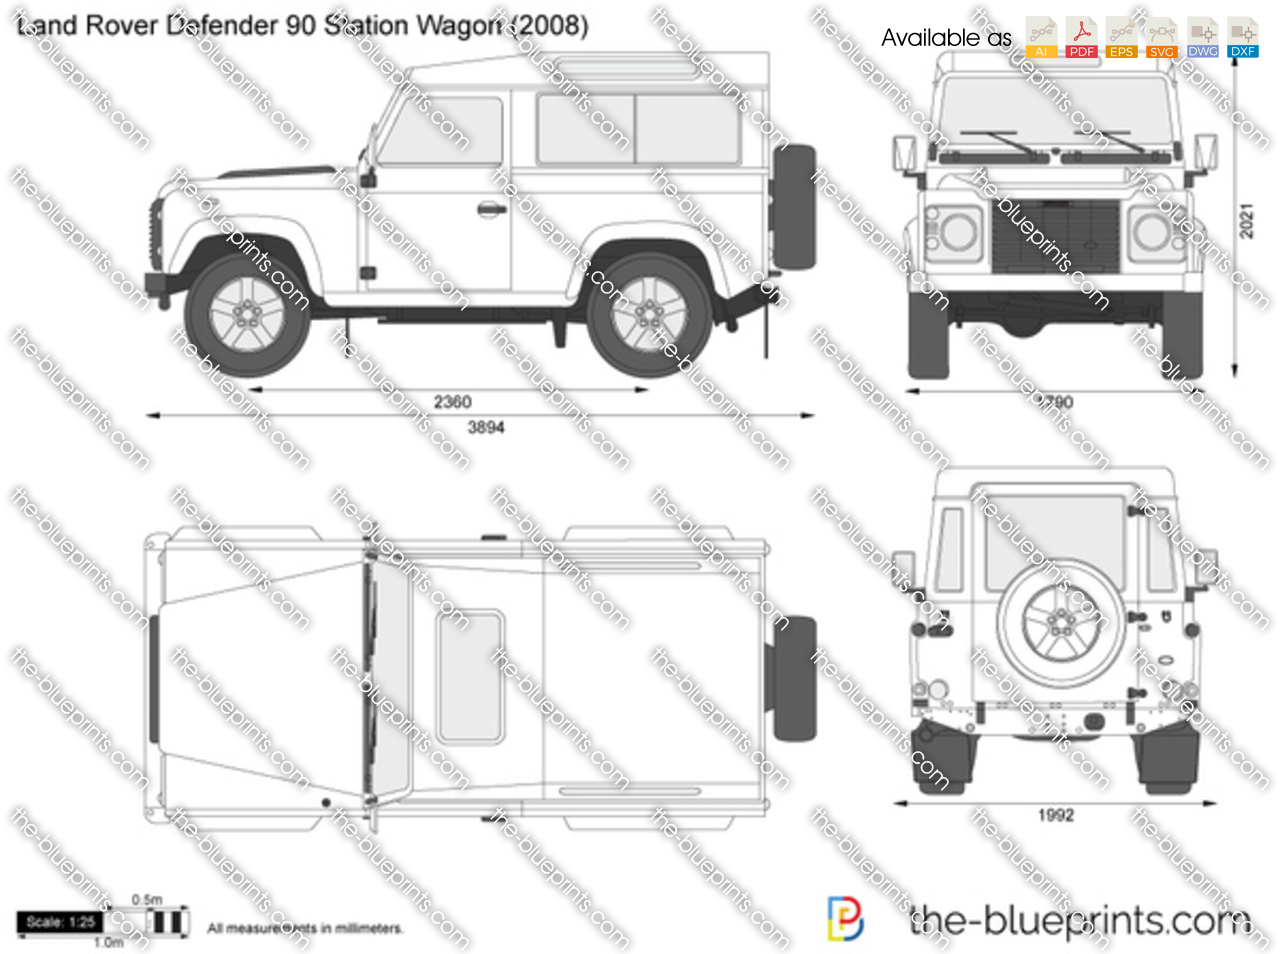 Land Rover Defender 90 Station Wagon 2003